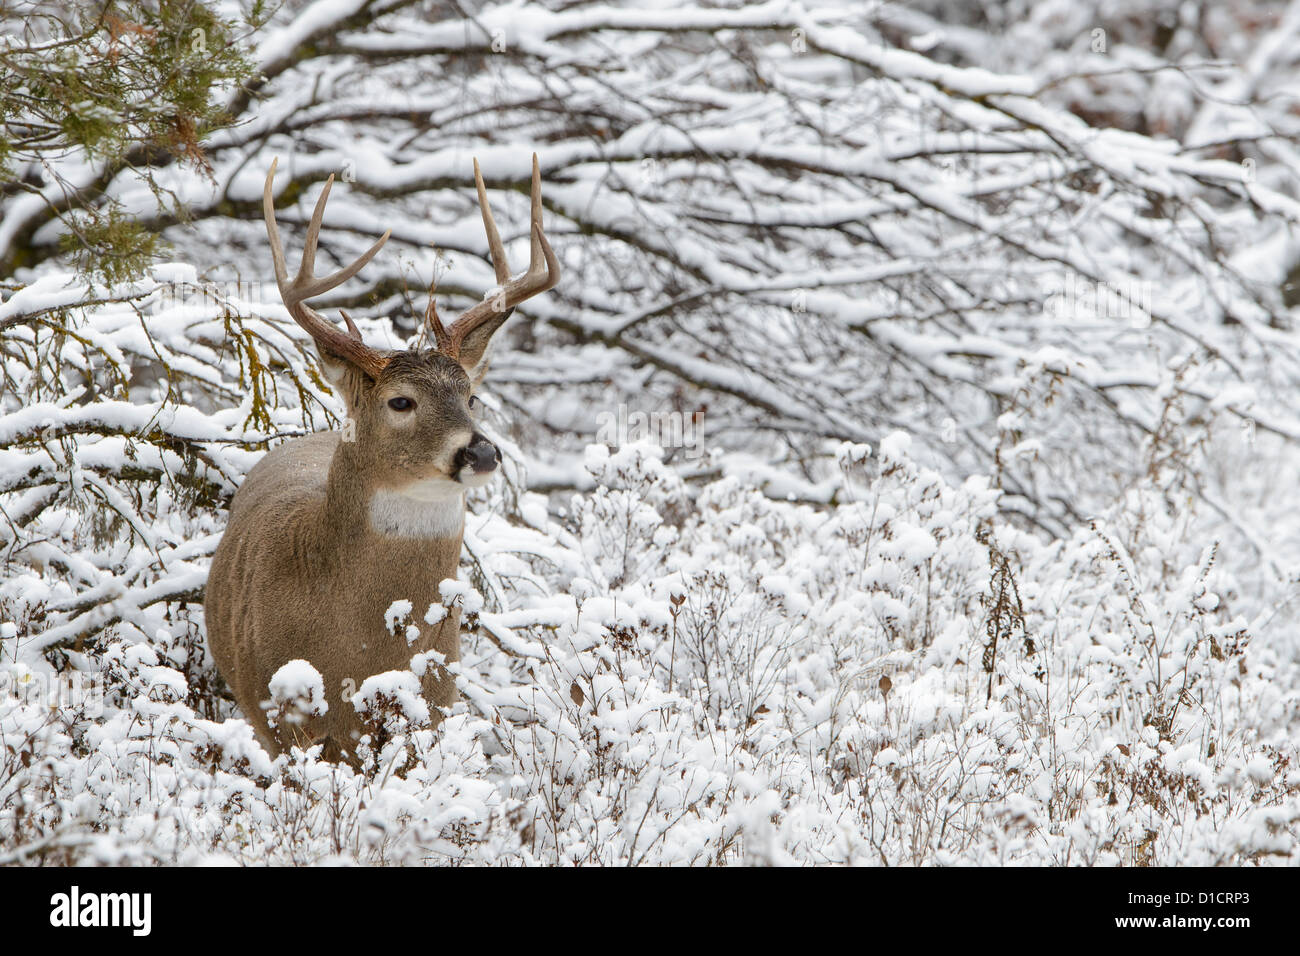 White-tailed Buck in fresh snow, Western Montana - Stock Image